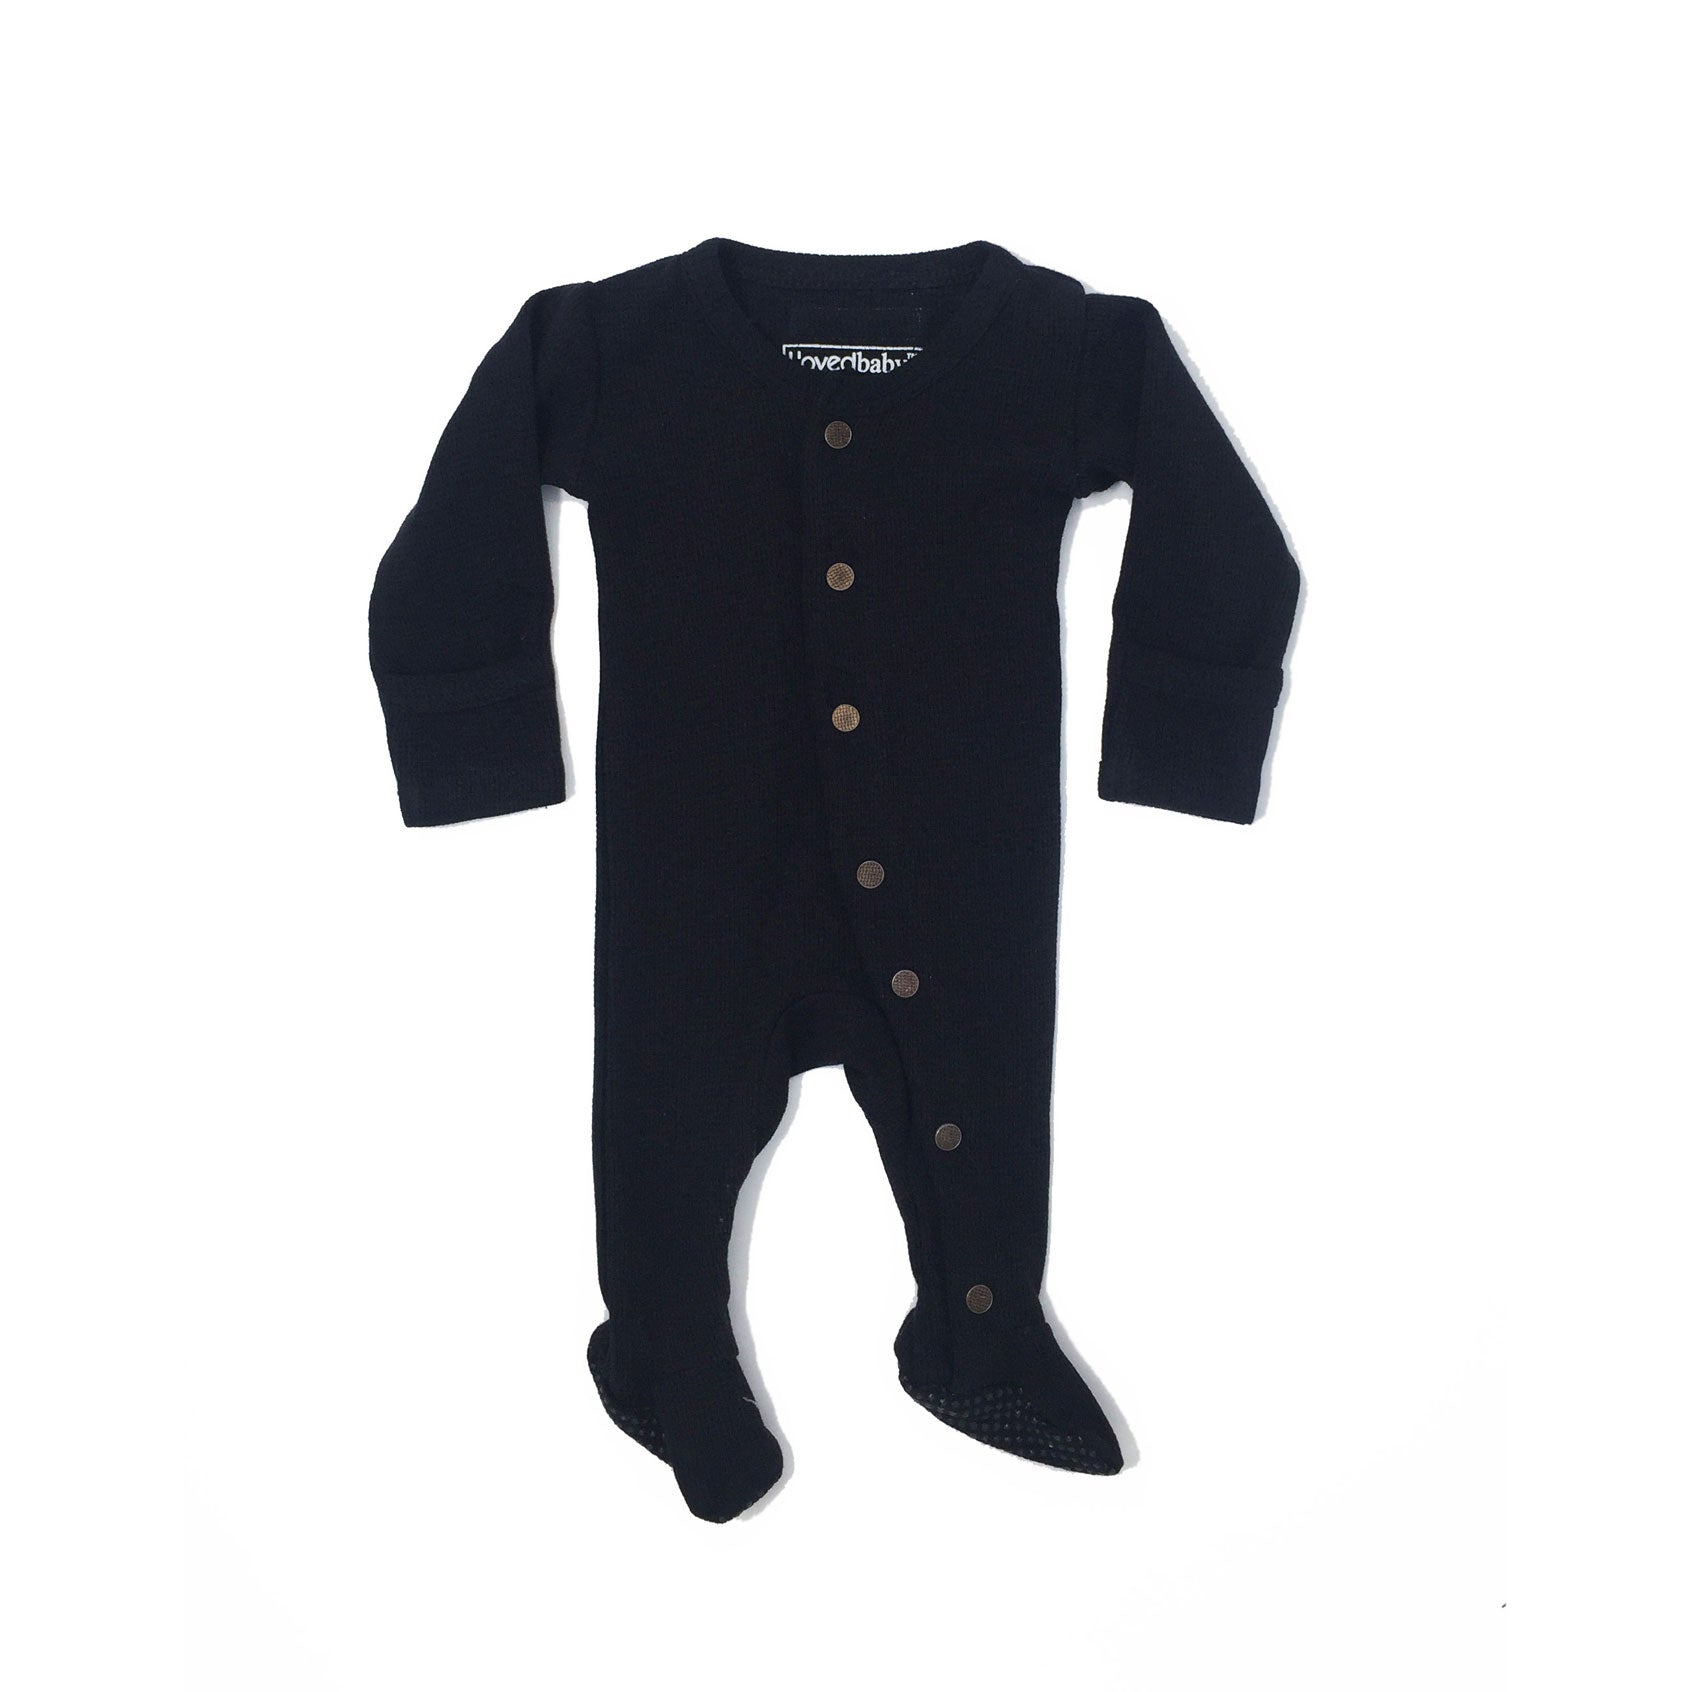 L'ovedbaby Black Gloved-Sleeve Overall - Ladida